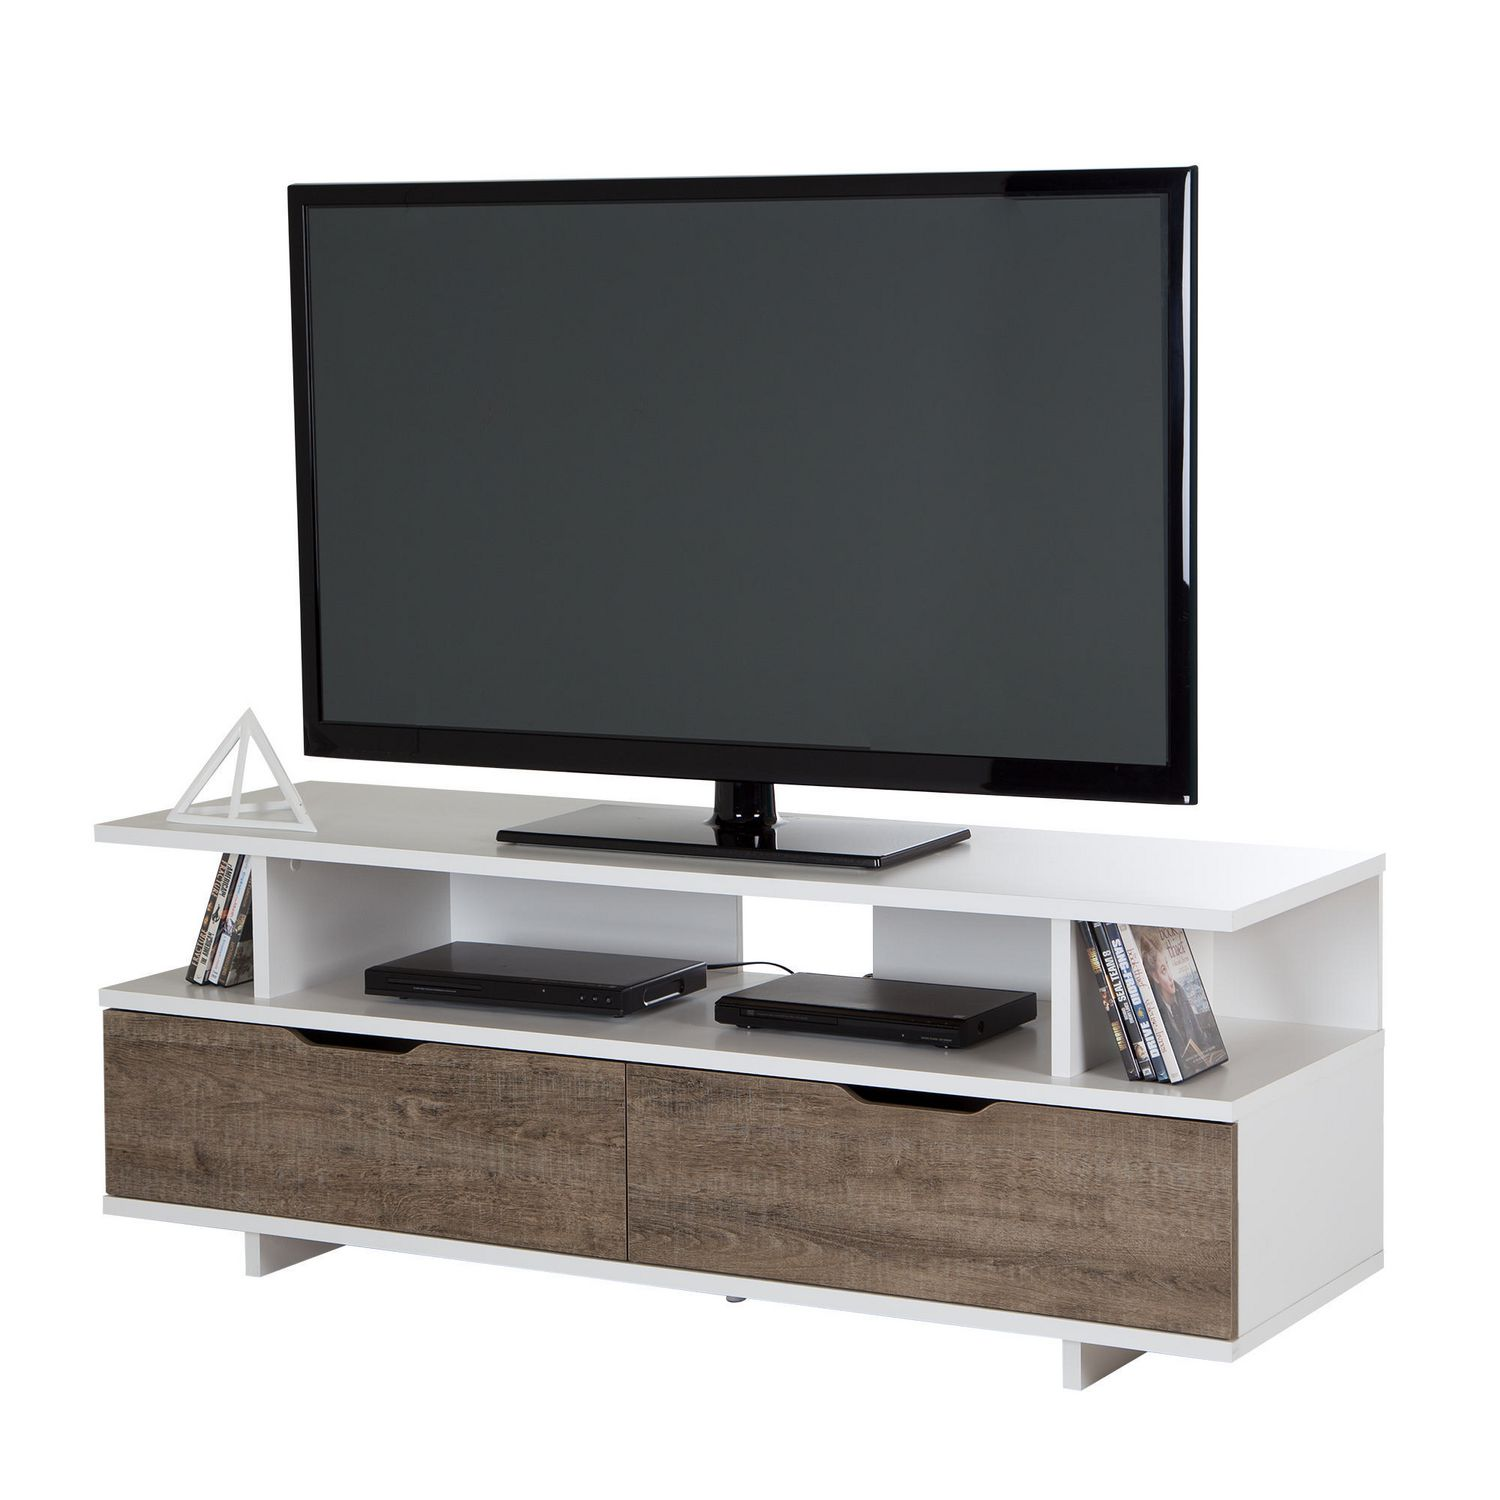 south shore reflekt tv stand with drawers for tvs up to  inches  - south shore reflekt tv stand with drawers for tvs up to  inches walmartca